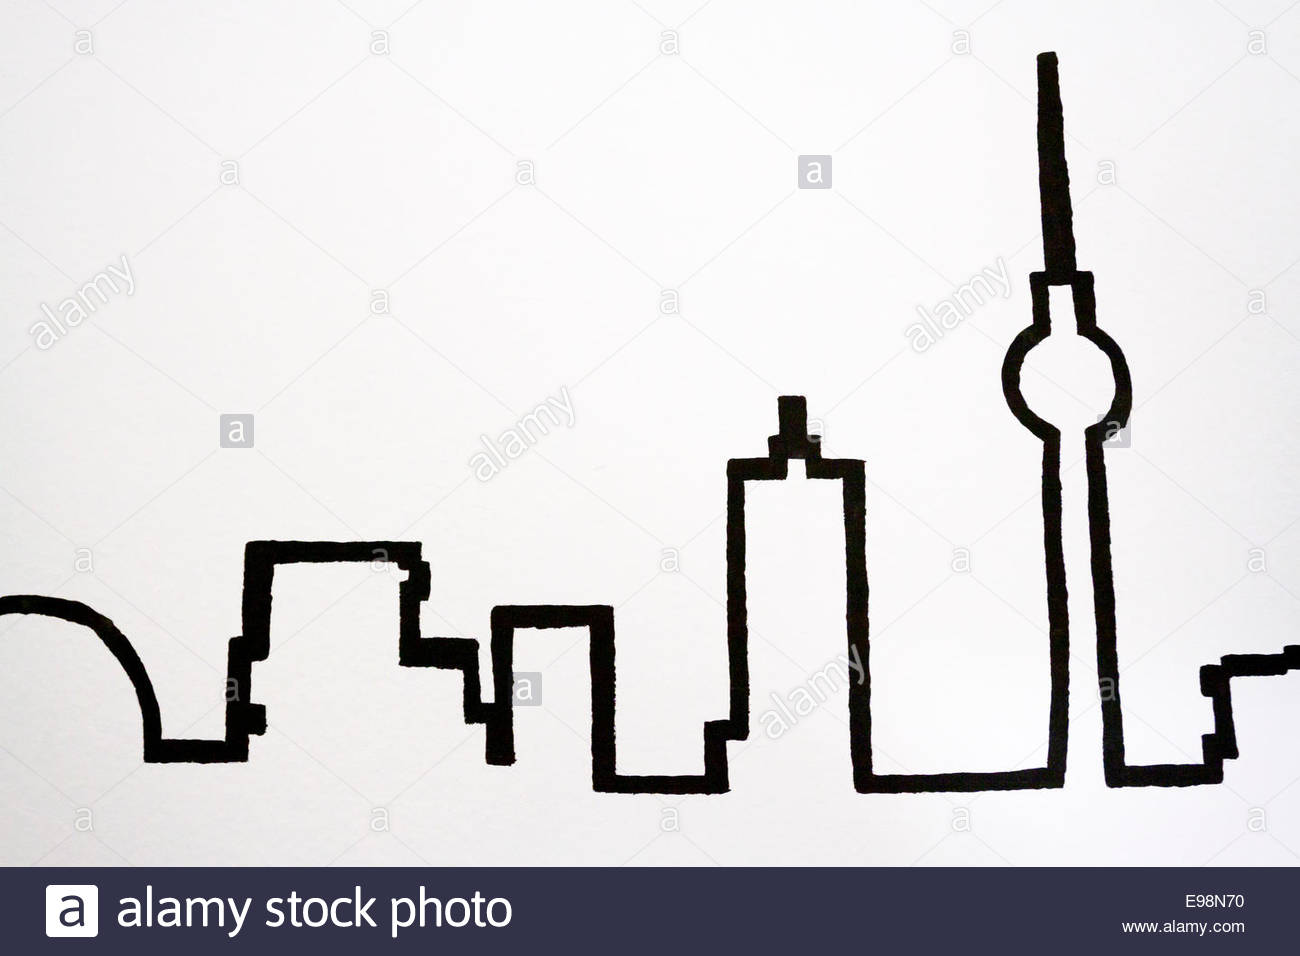 1300x956 Silhouettes Of The Most Famous Landmarks Berlin. Berlin Stock